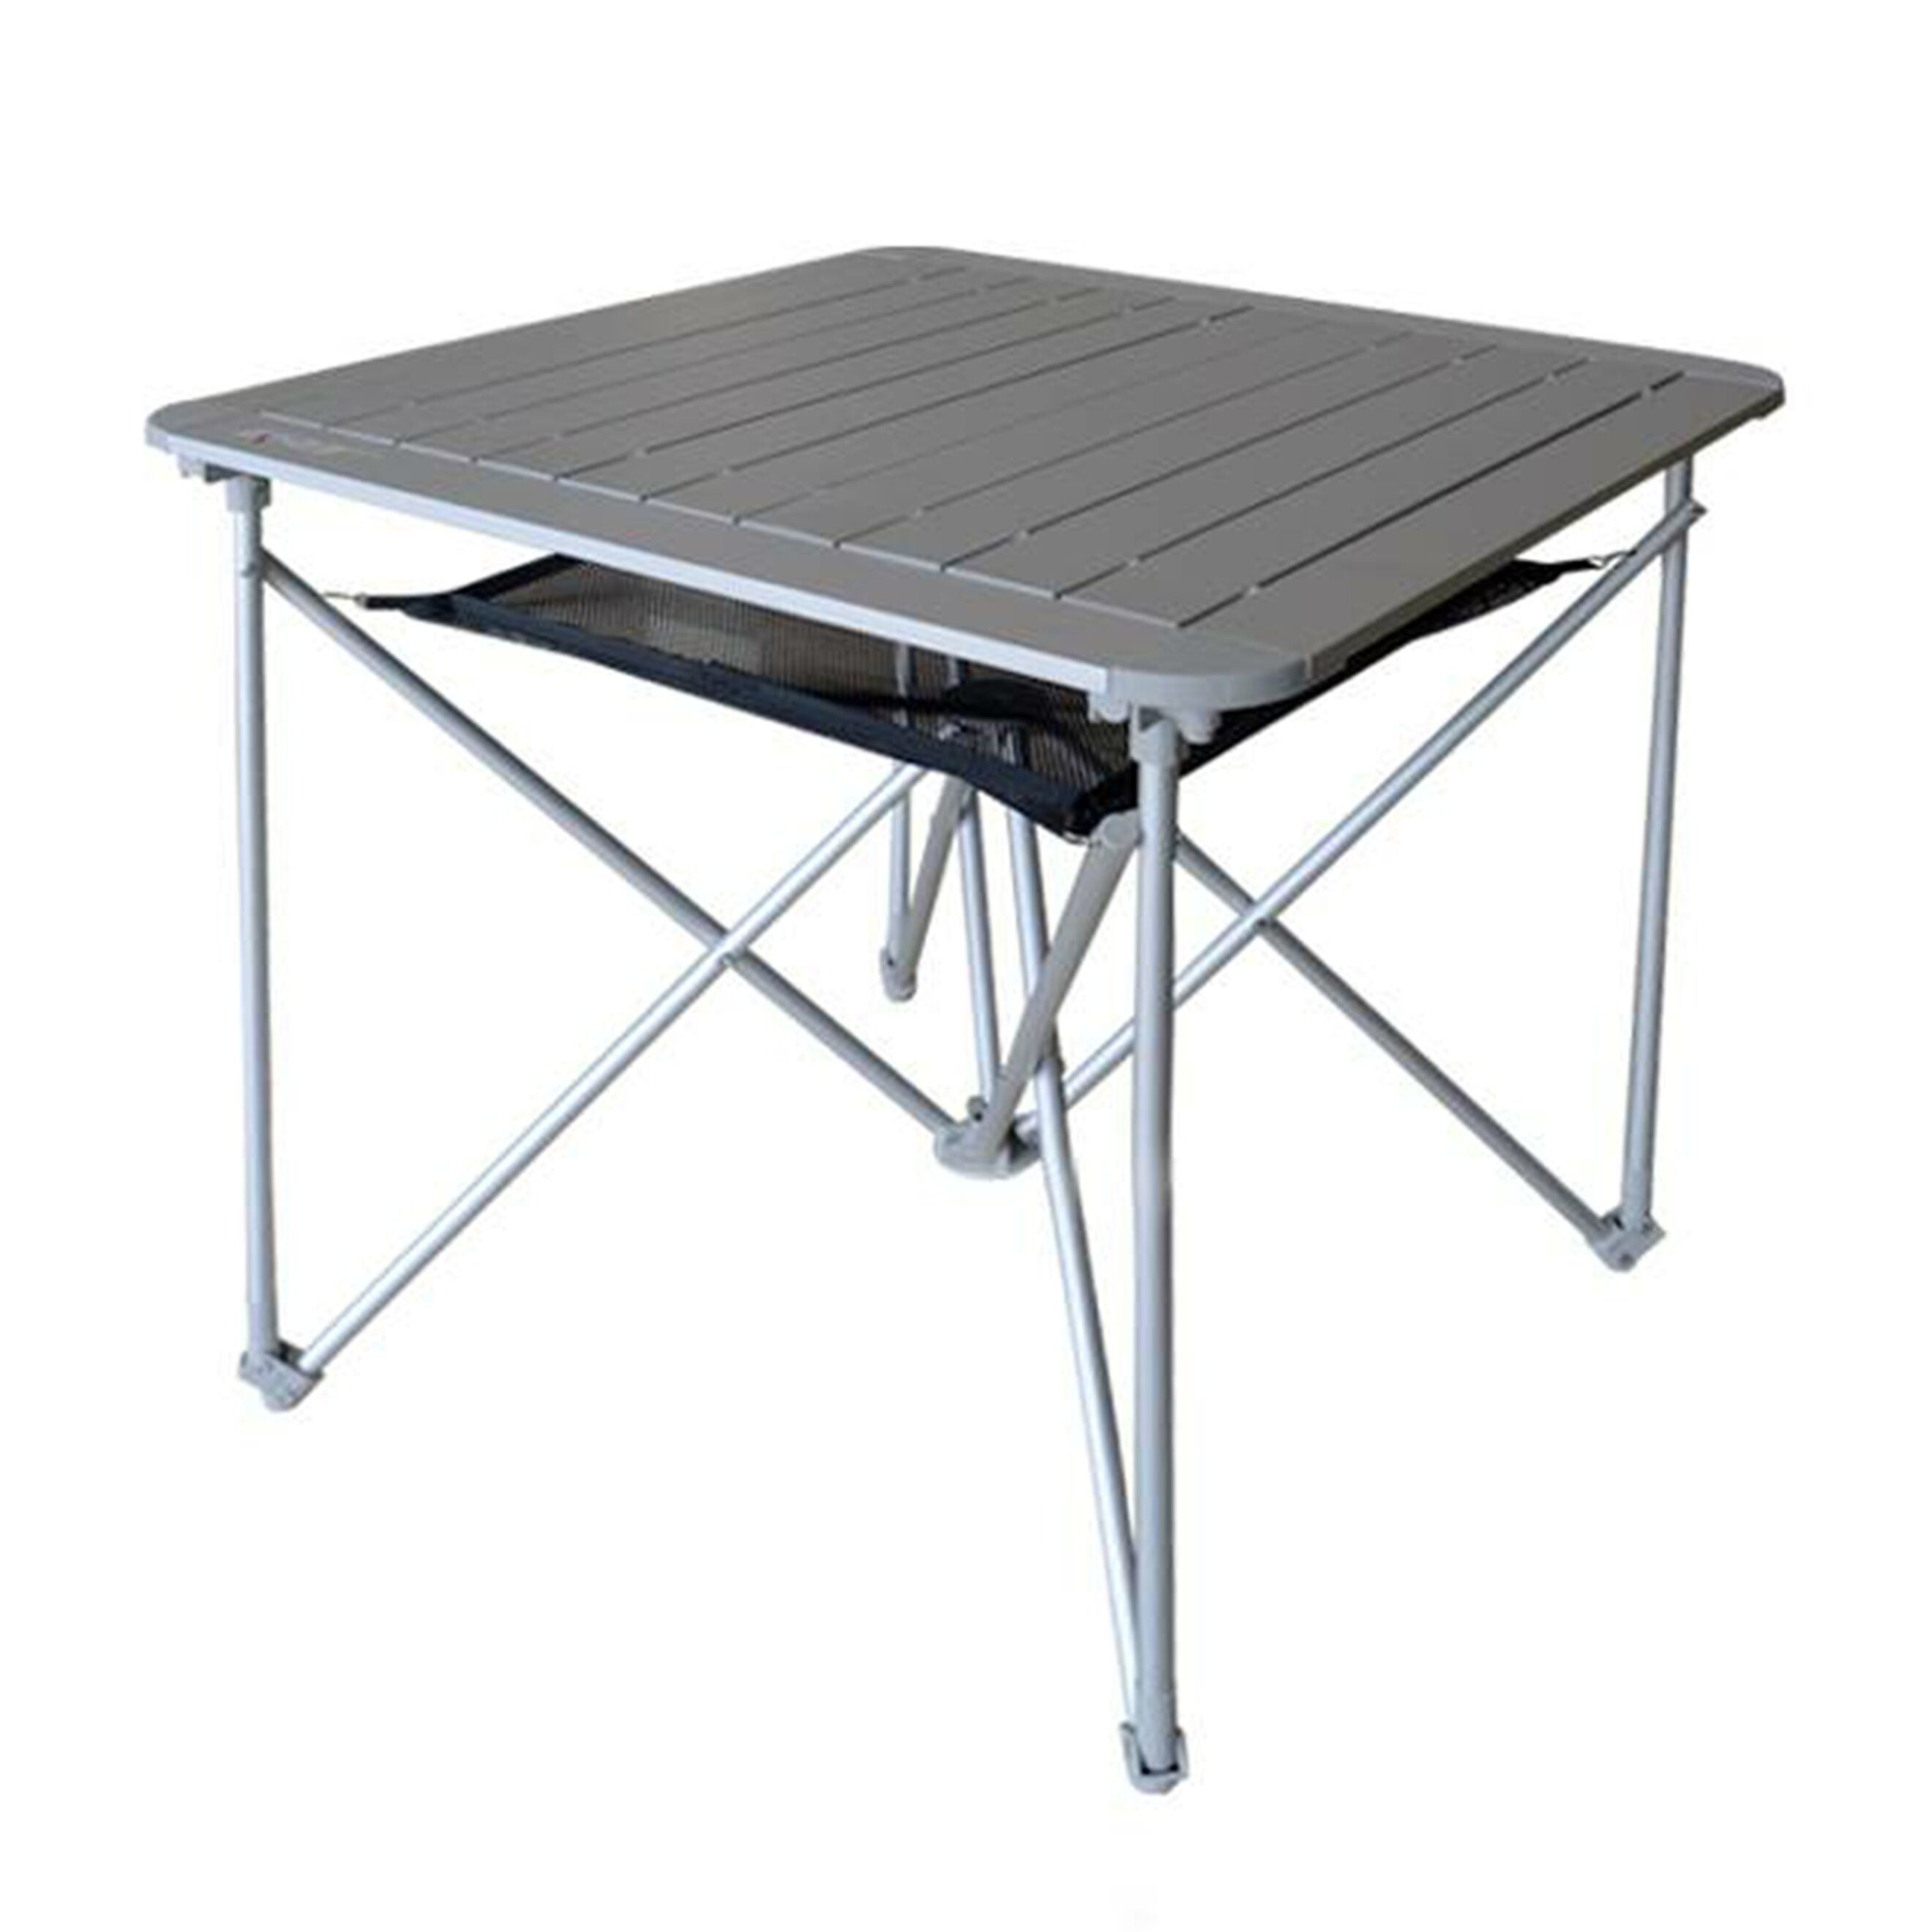 Aluminum Folding/Camping Table (with patent)